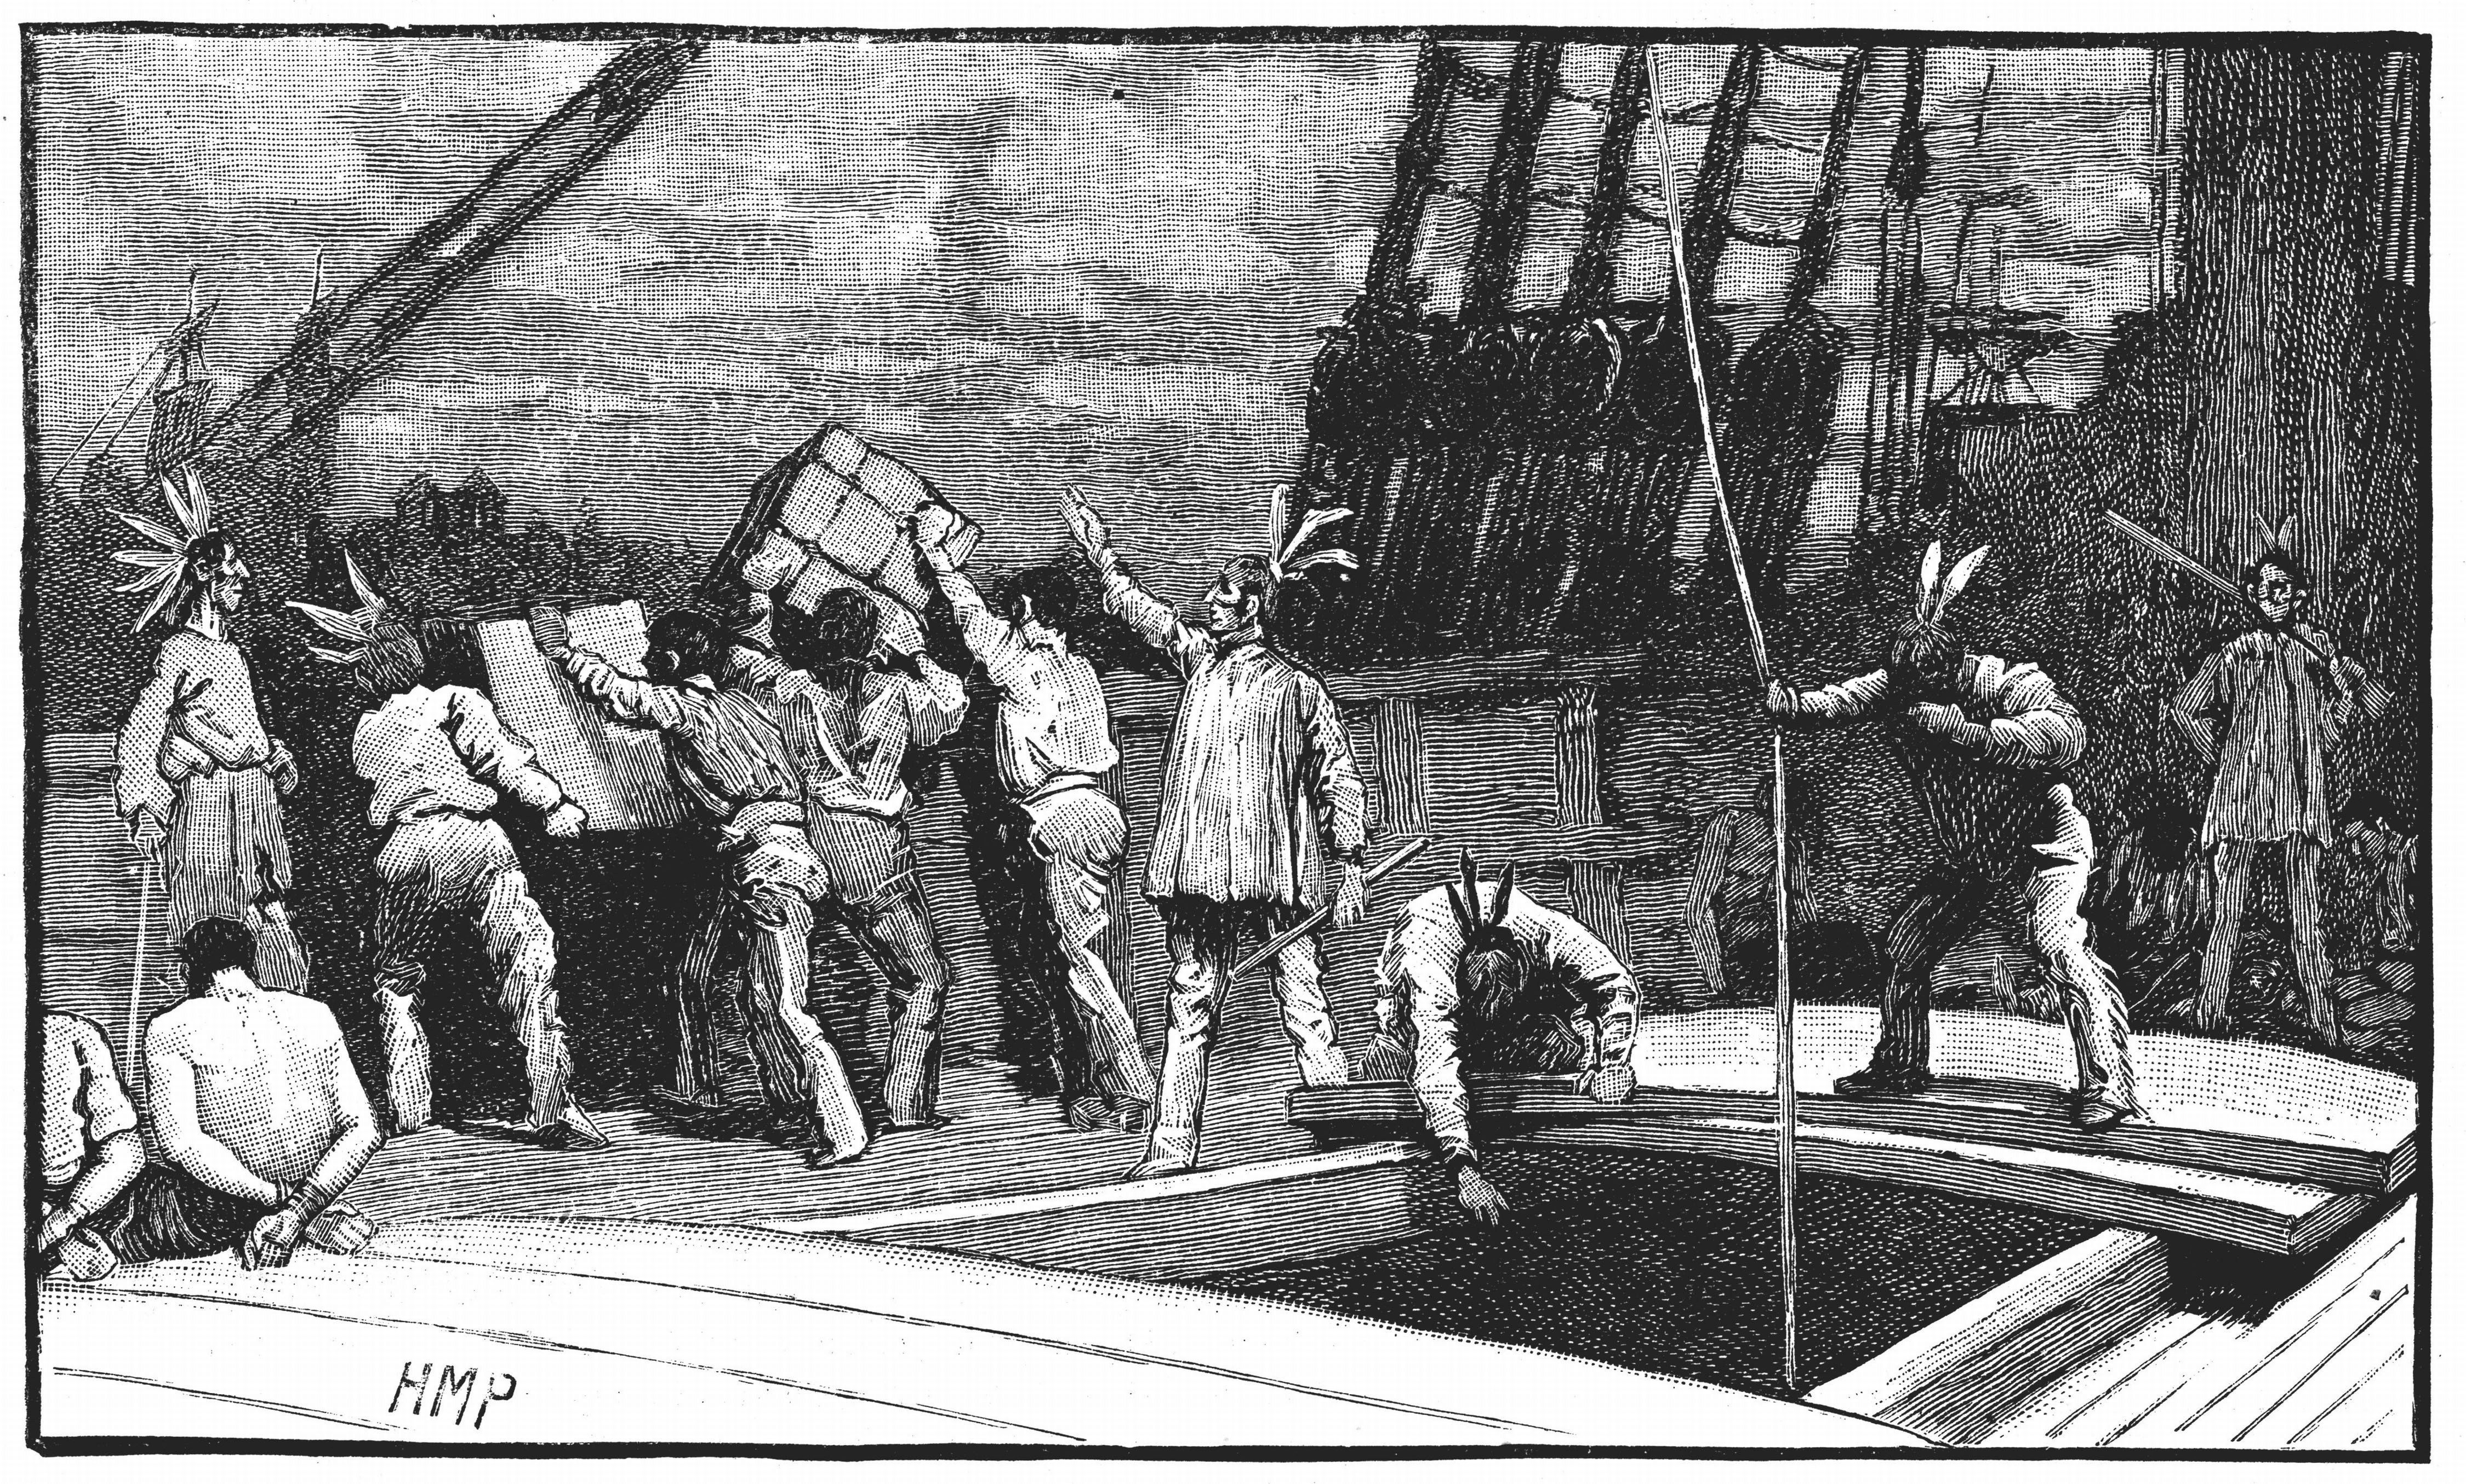 Boston Tea Party, 26 December 1773. Inhabitants of Boston, Massachusetts, dressed as American Indians,  throwing tea from vessels in the harbour into the water as a protest against British taxation. 'No taxation without representation'Late nineteenth centuryWood engraving. (Photo by: Photo12/UIG via Getty Images)